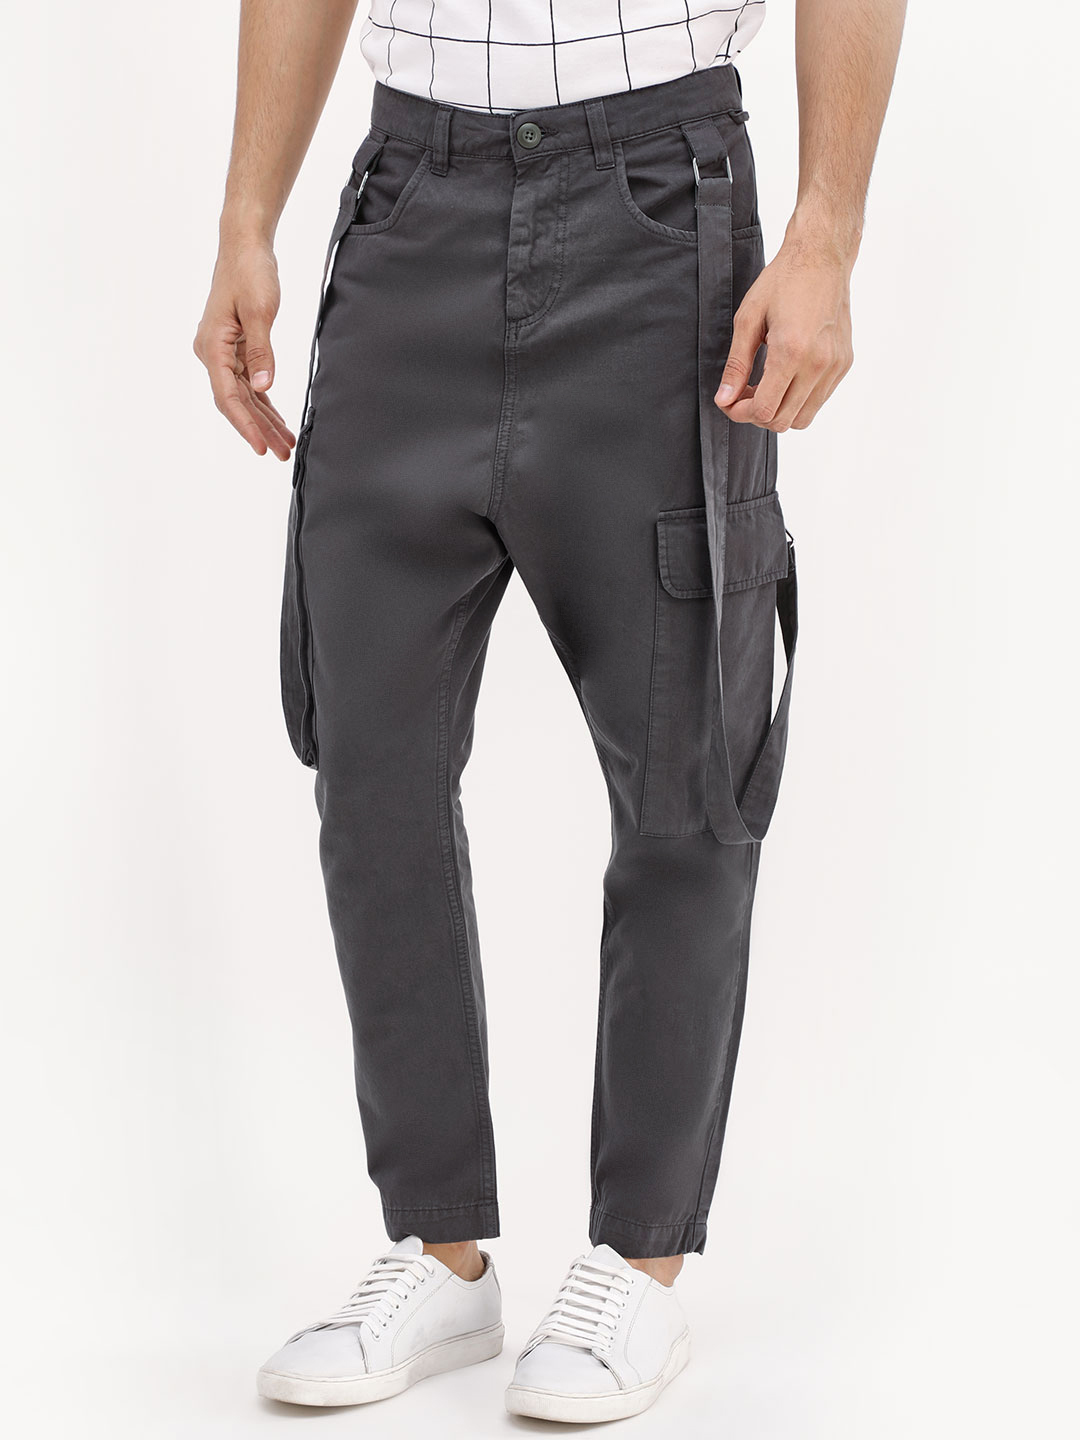 Blue Saint Grey Cargo Trousers With Suspenders 1